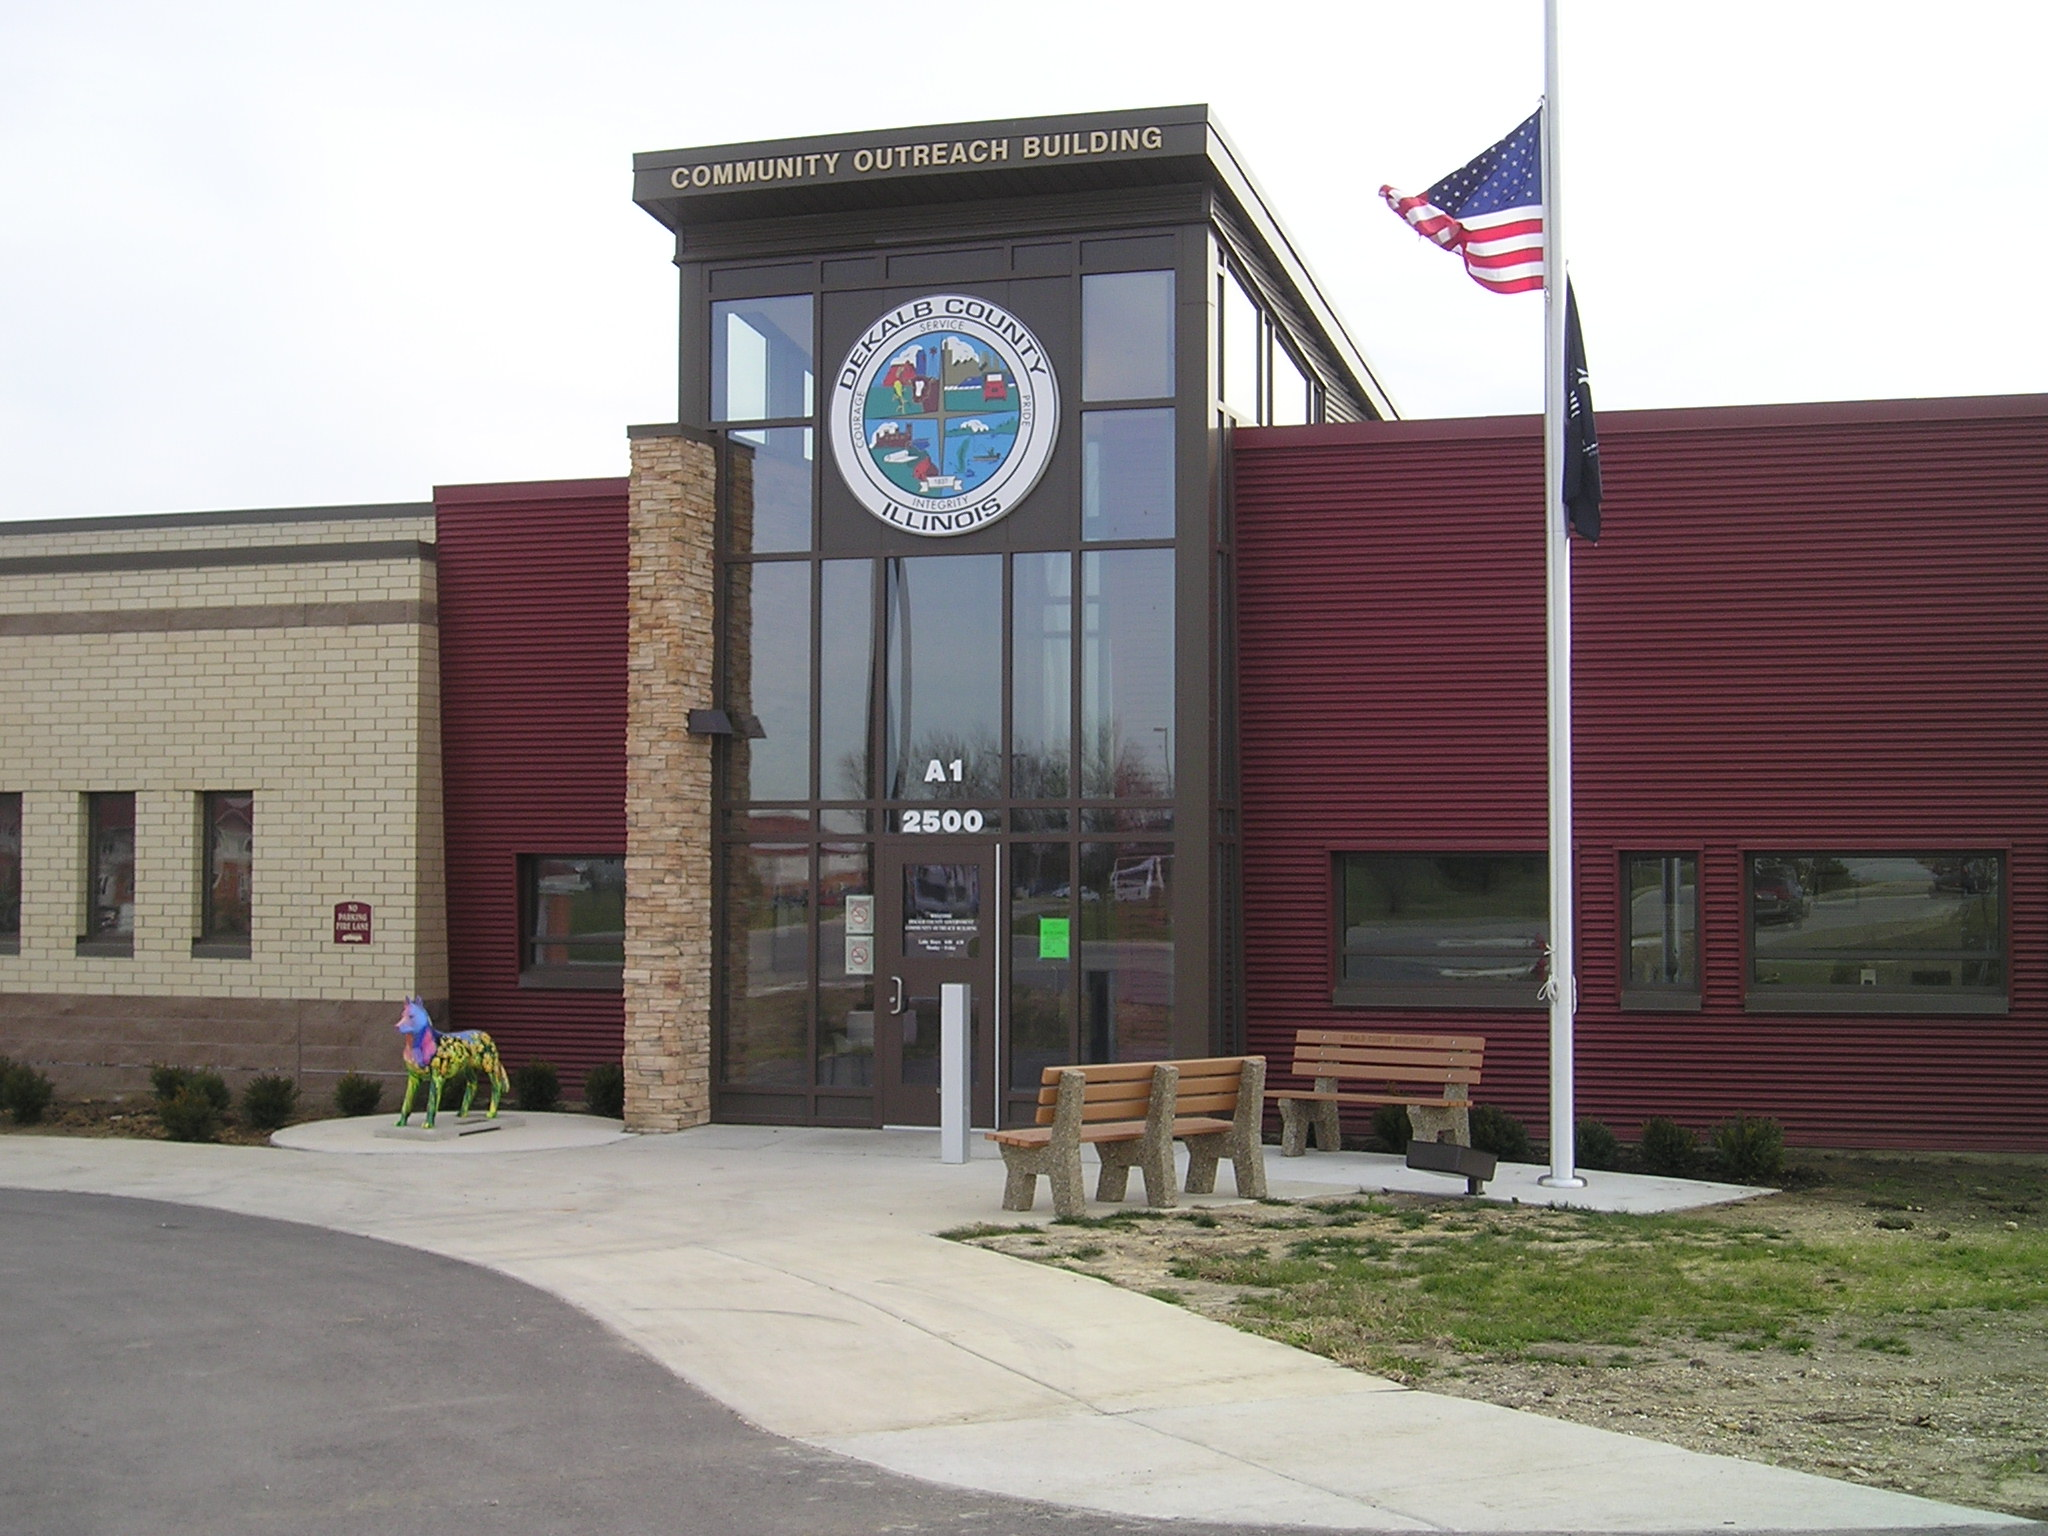 Government - Dekalb County Community Outreach Building